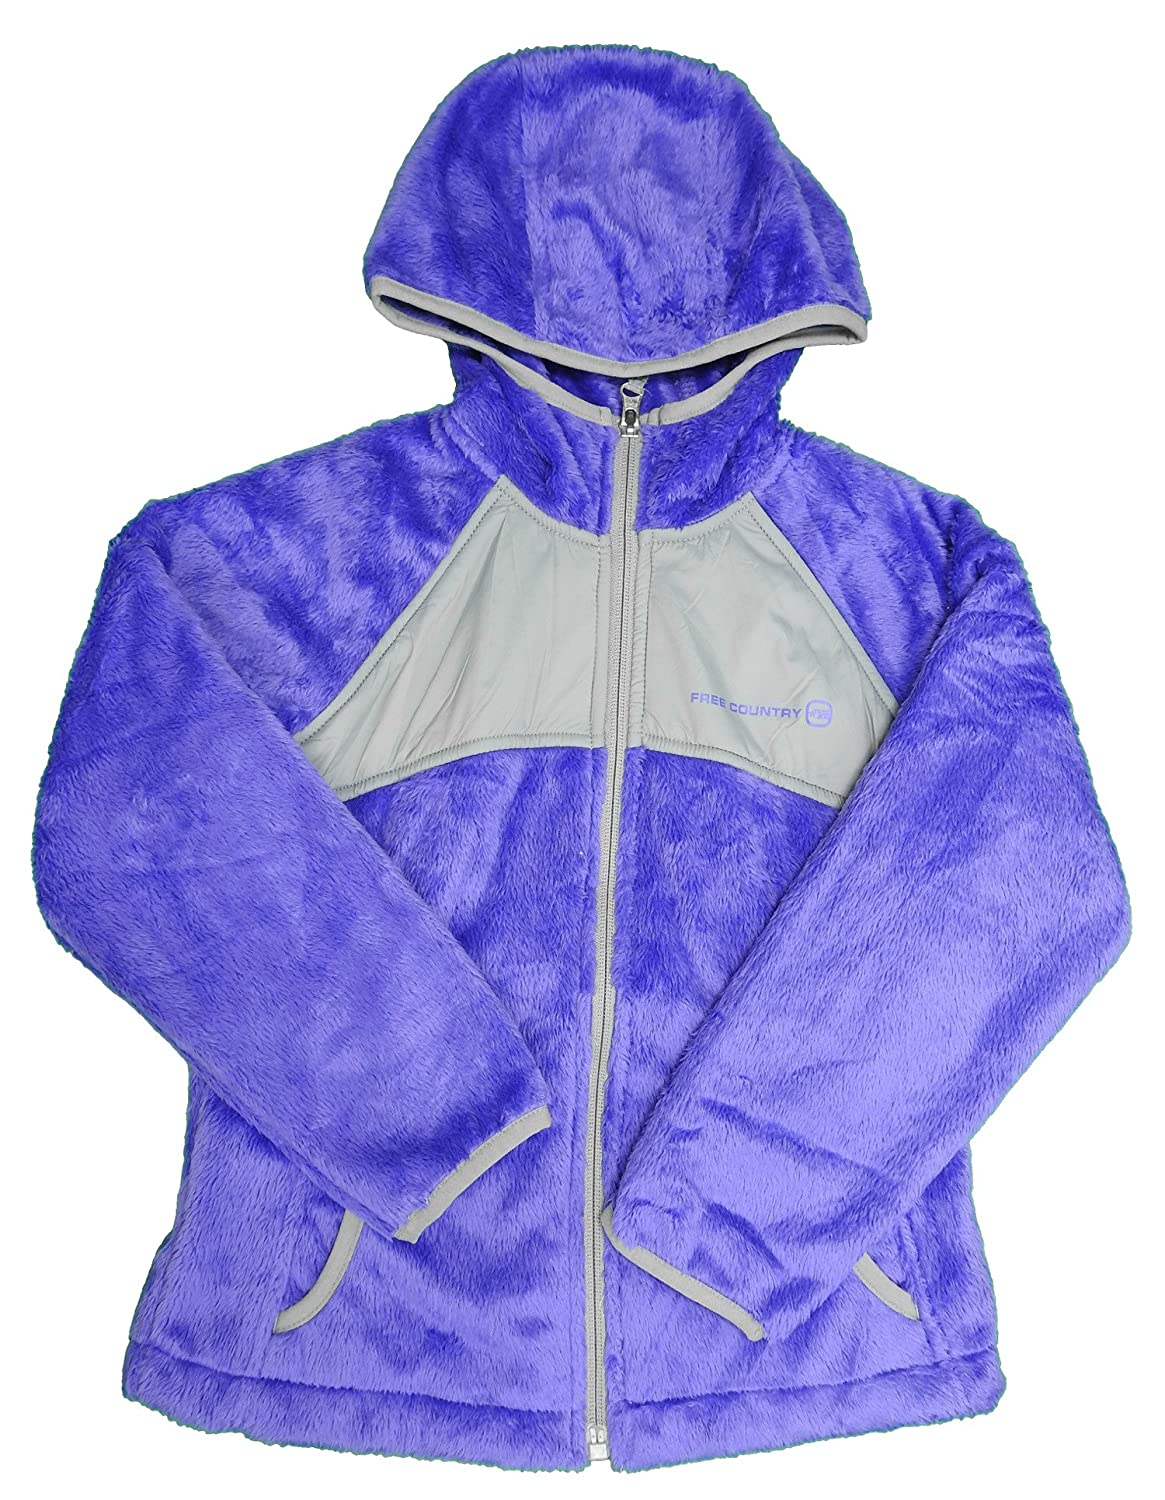 Free Country Girls Butter Pile Soft Shell Jacket Ultra Violet